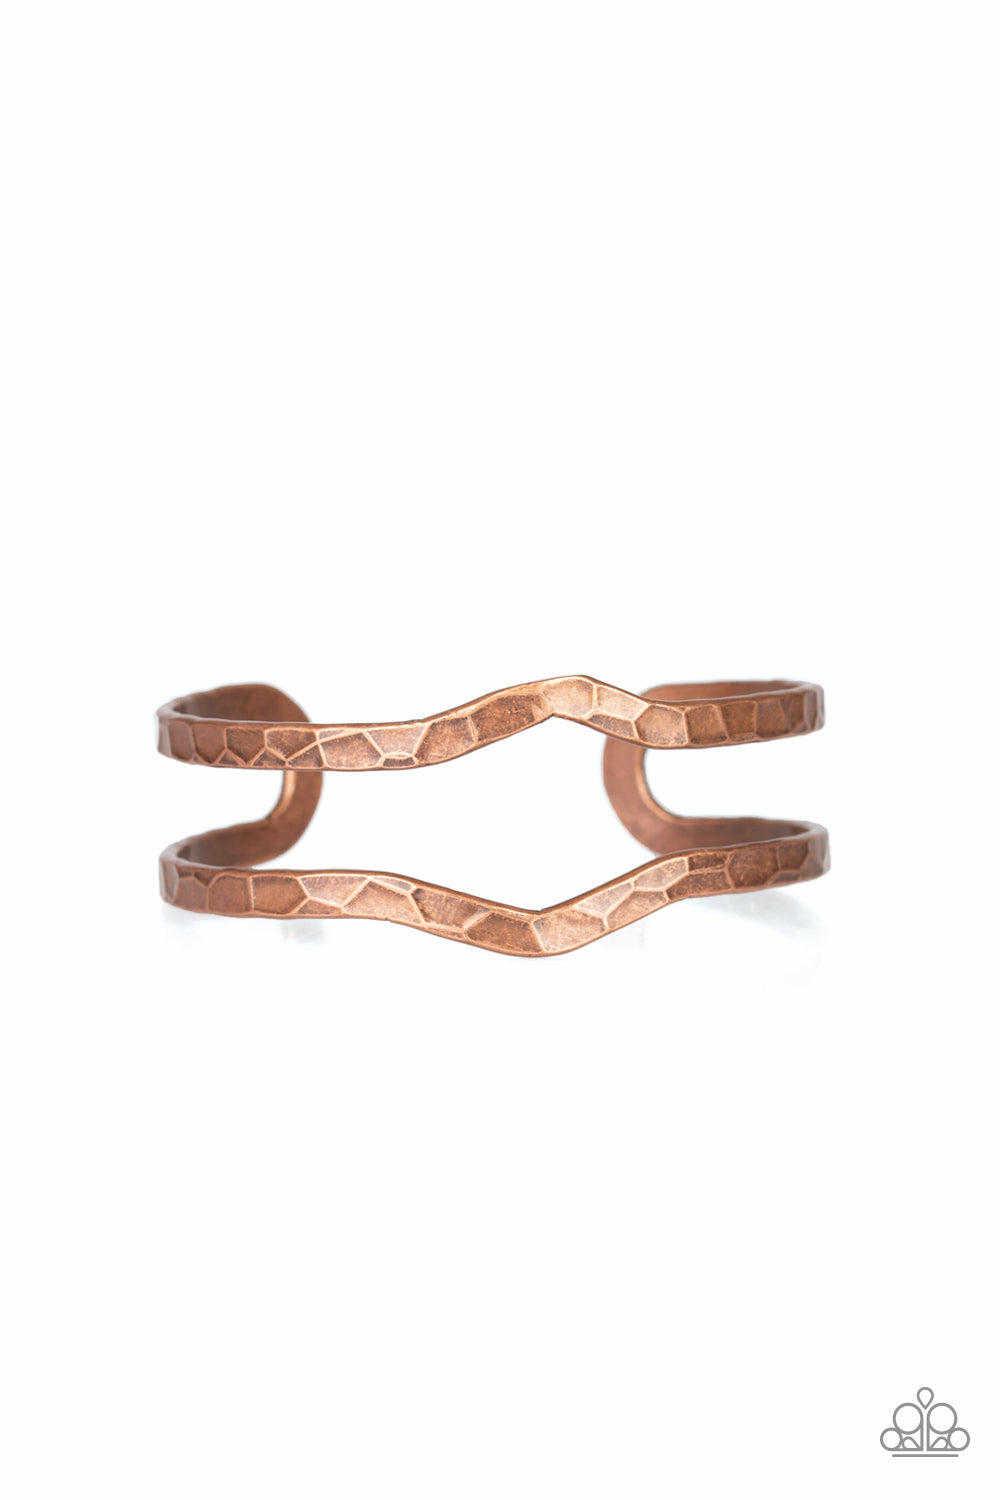 Highland Heiress - Copper Bracelet